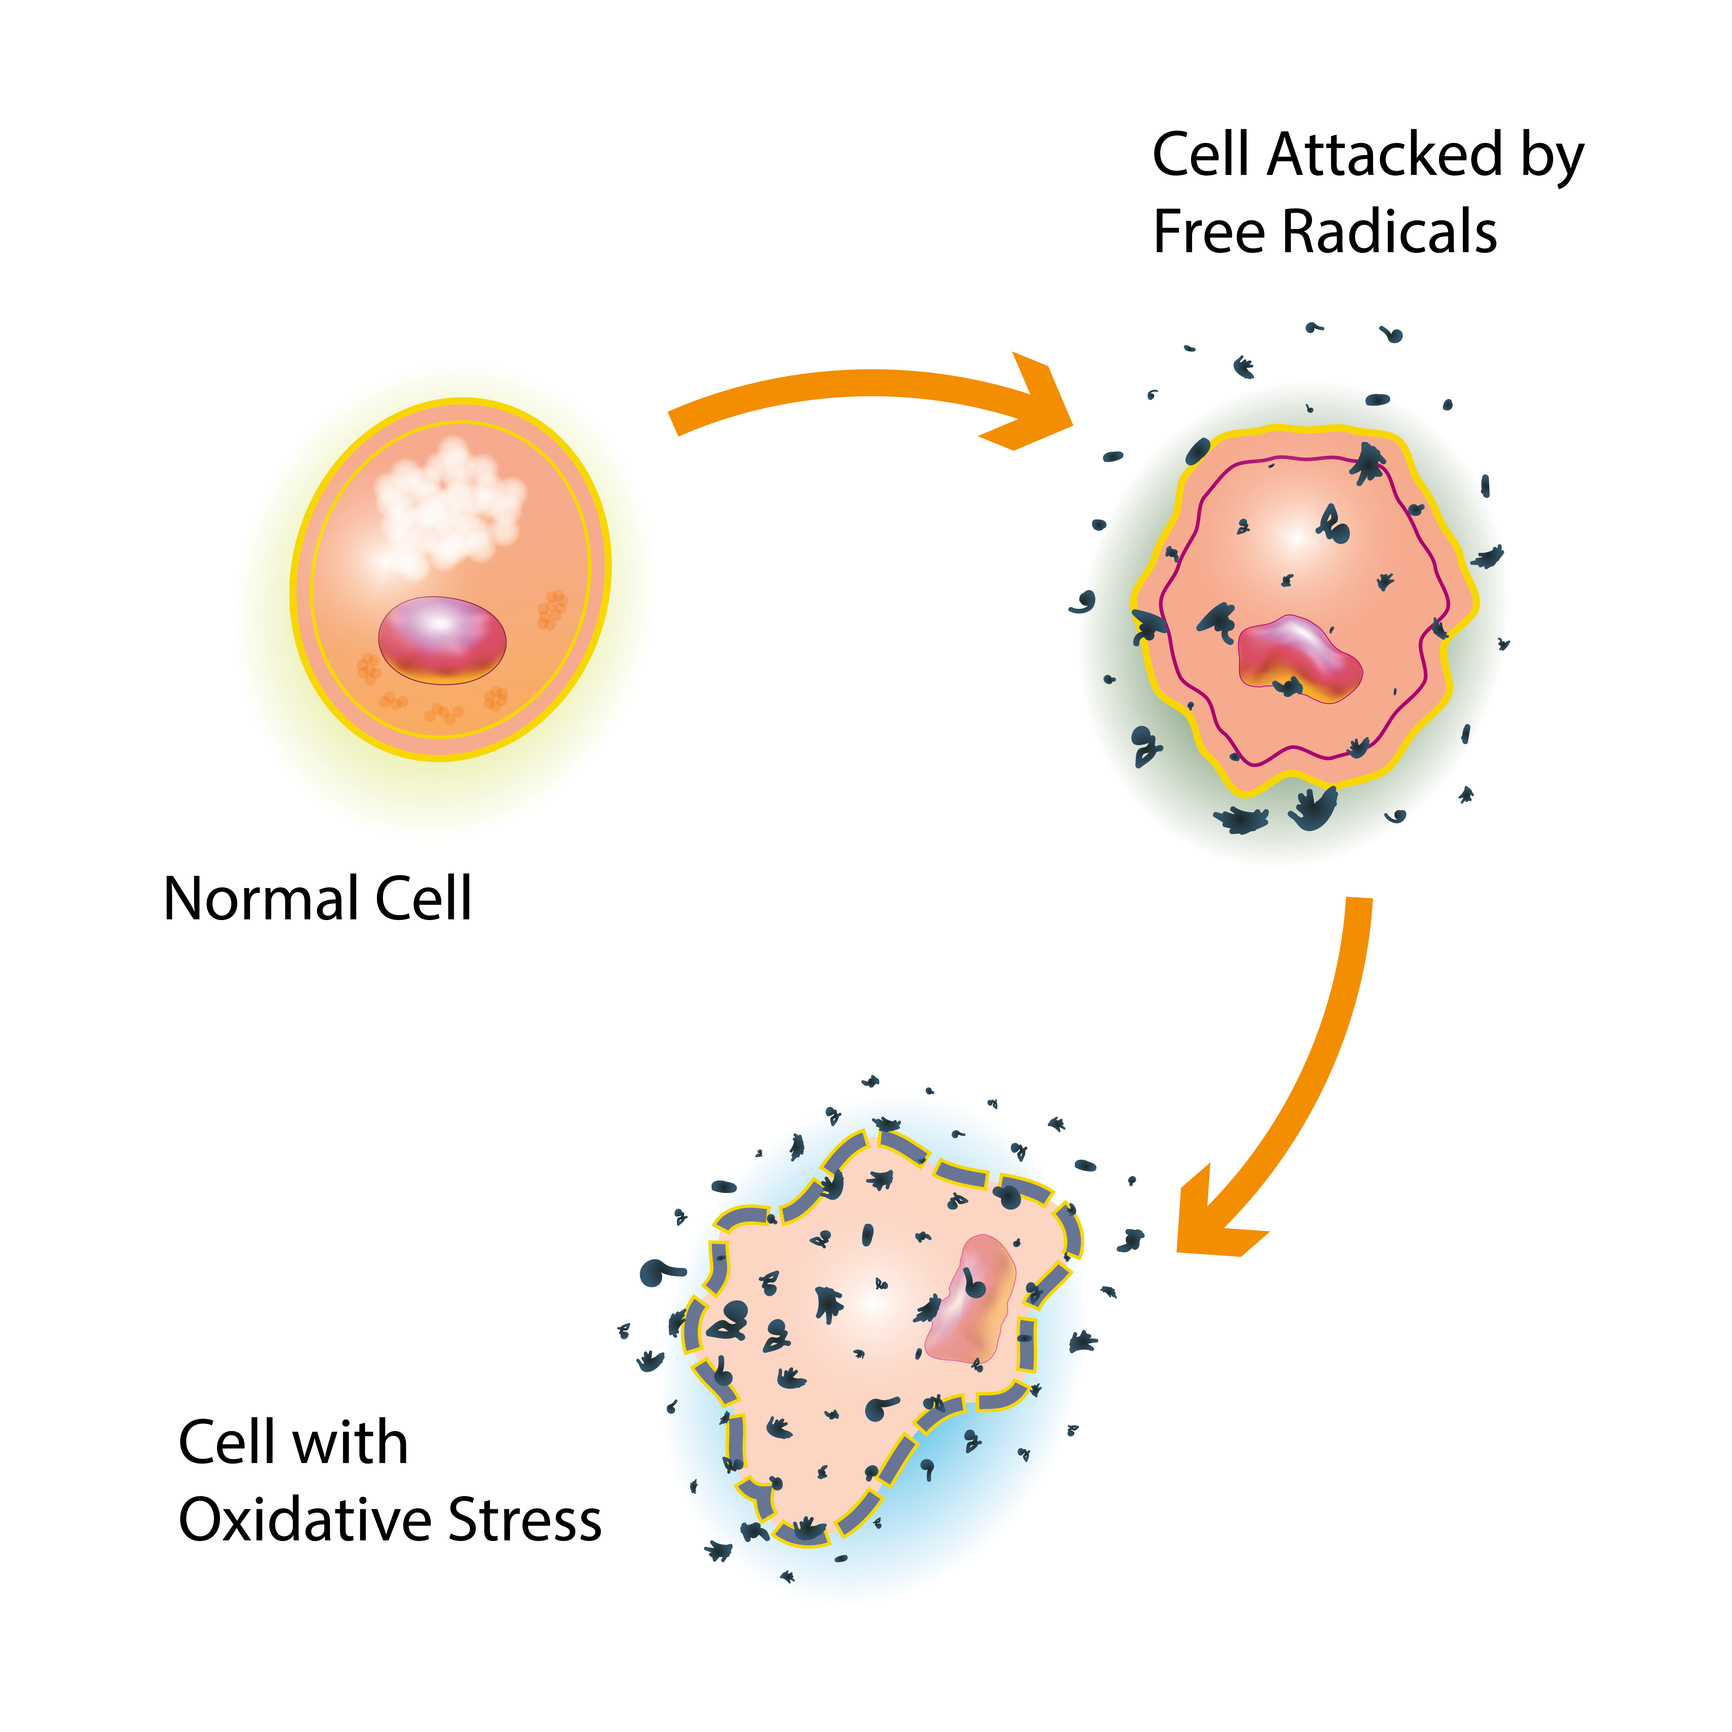 Graphic on how a normal cell gets attacked by free radicals, producing a cell with oxidative stress